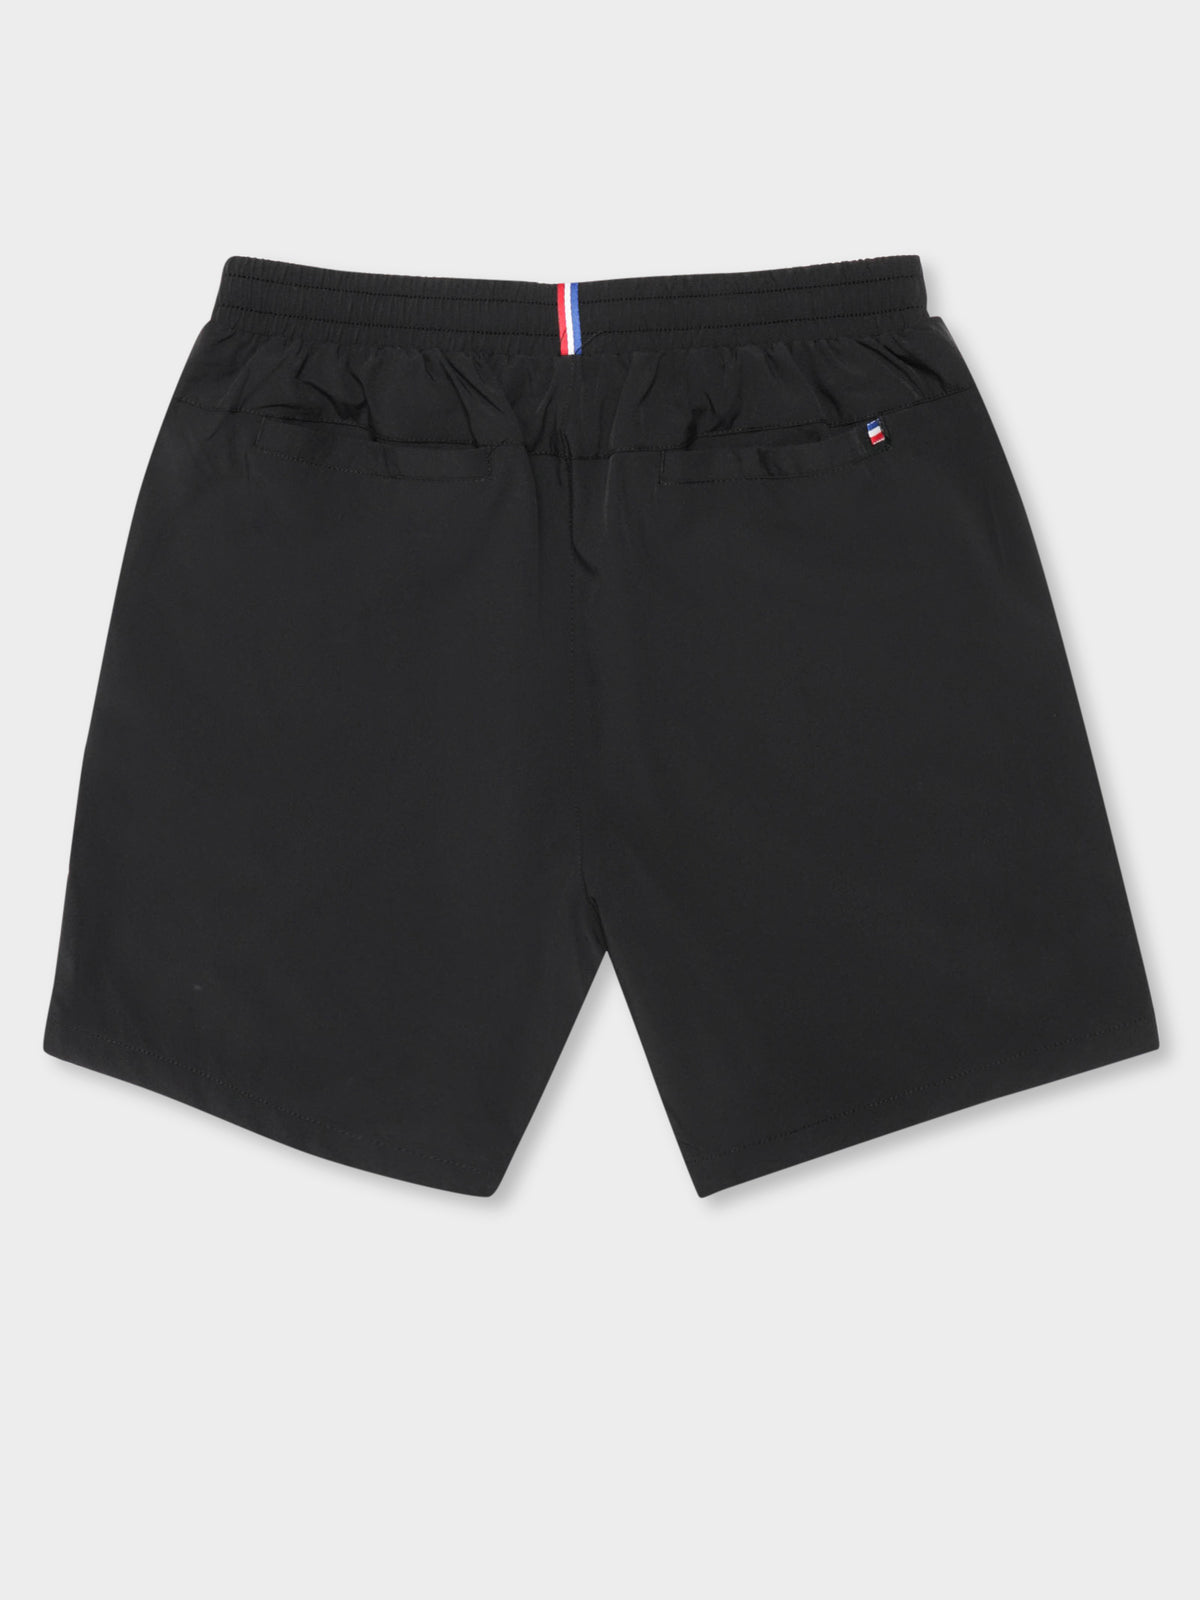 Concurrent Shorts in Black